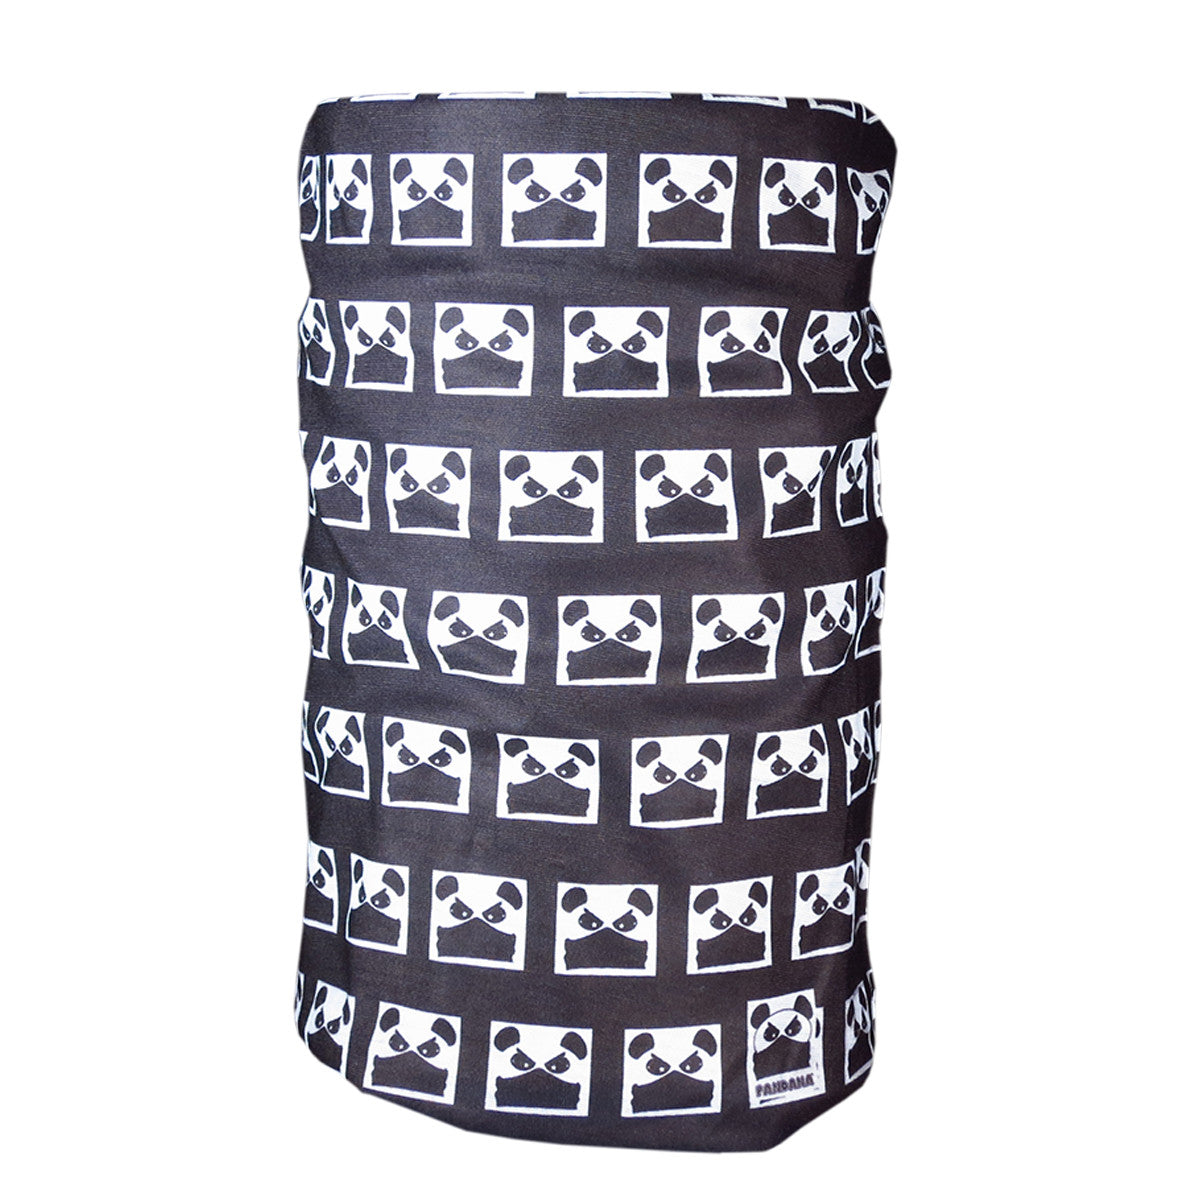 Panda Bear Graphic T-Shirt Hat Neck Gaiter Japanese Manga Style Clothing Pandana Buff